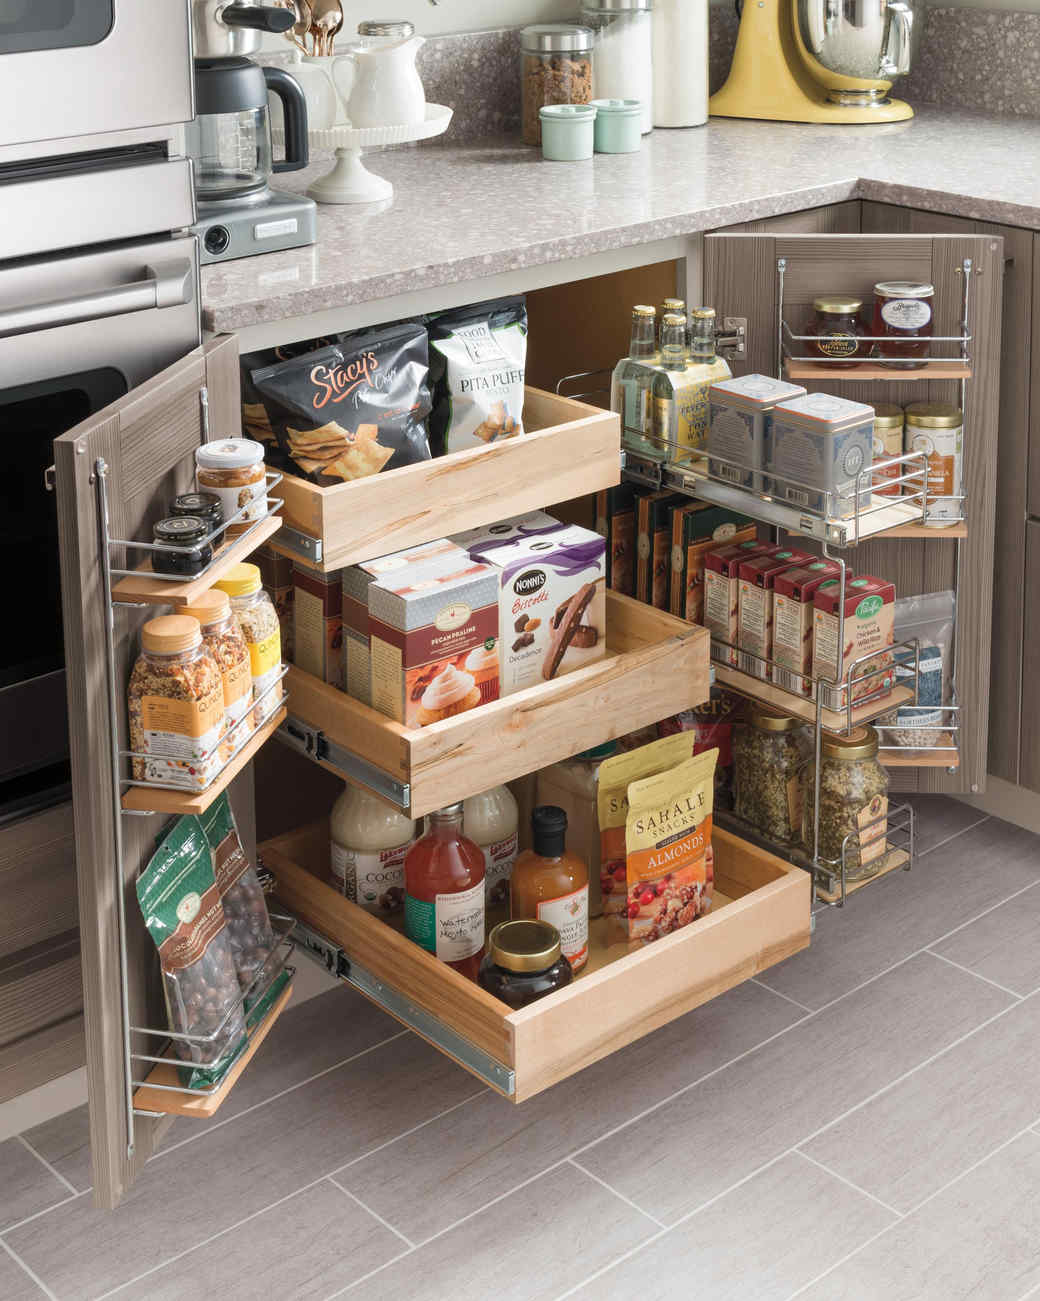 The idea for a small kitchen. Space optimization